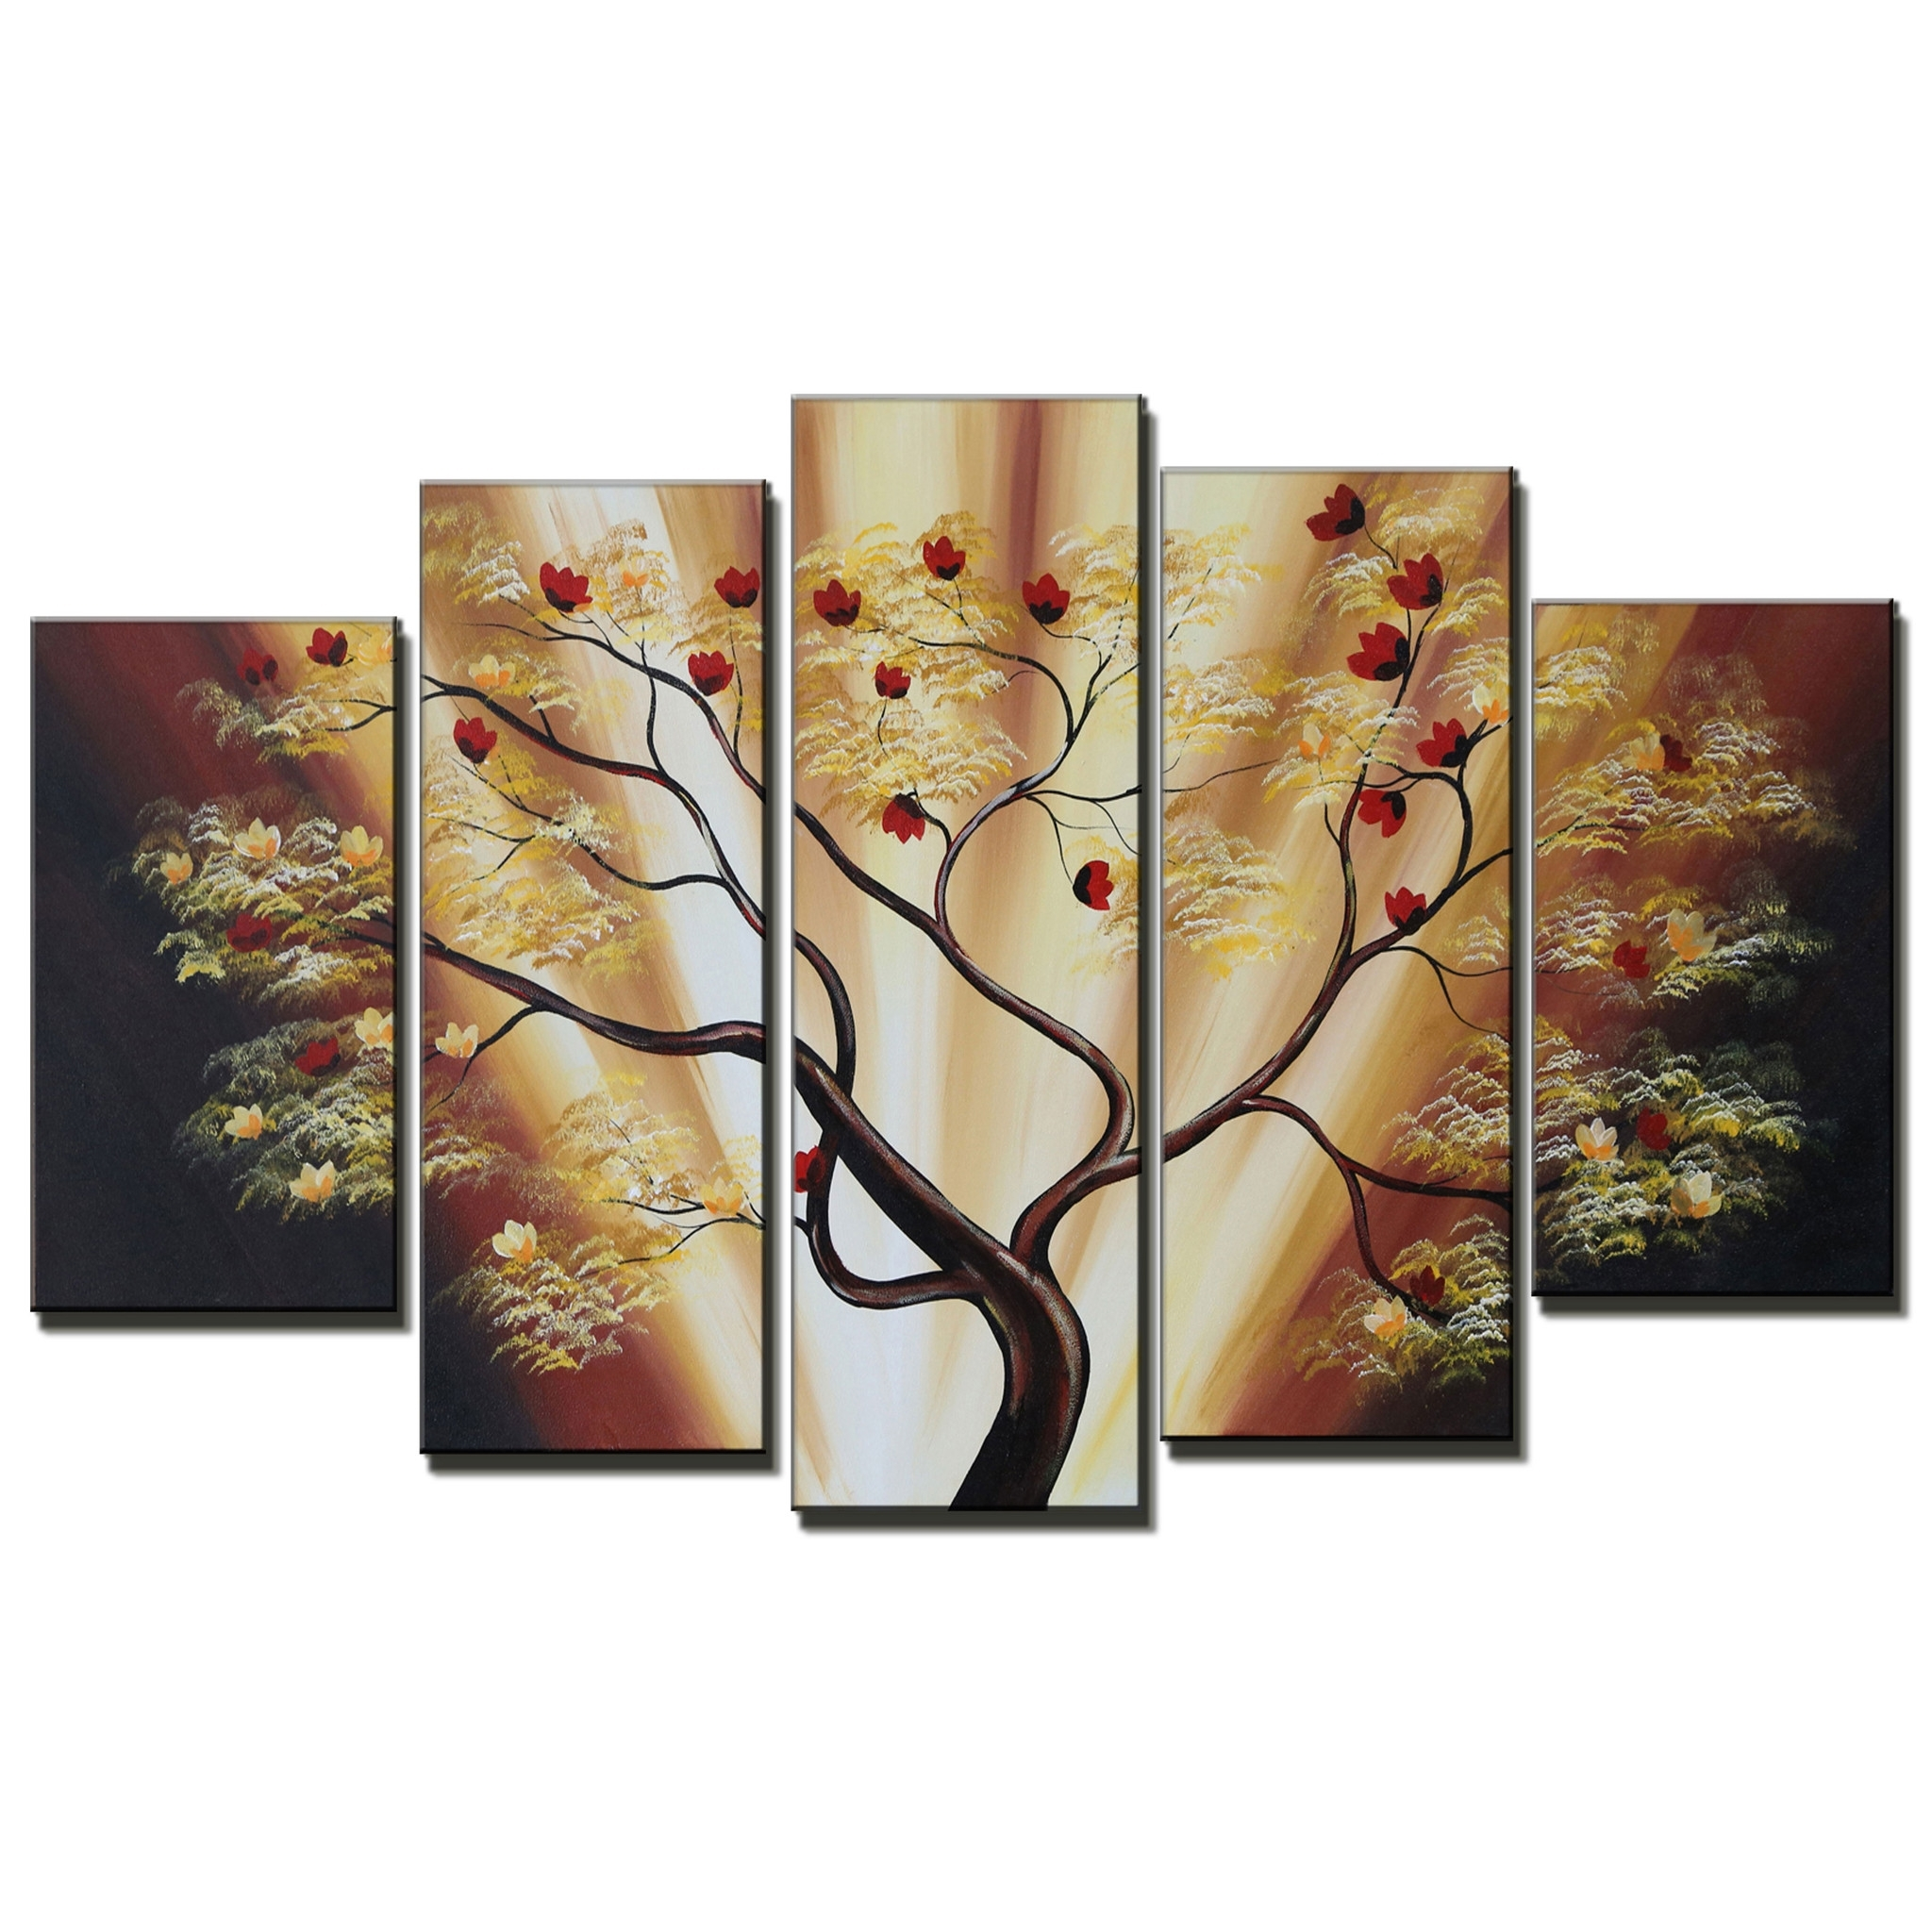 Bronze Tree Wall Art Regarding Latest Bronze Contemporary Tree Canvas Wall Art Oil Painting (View 7 of 15)